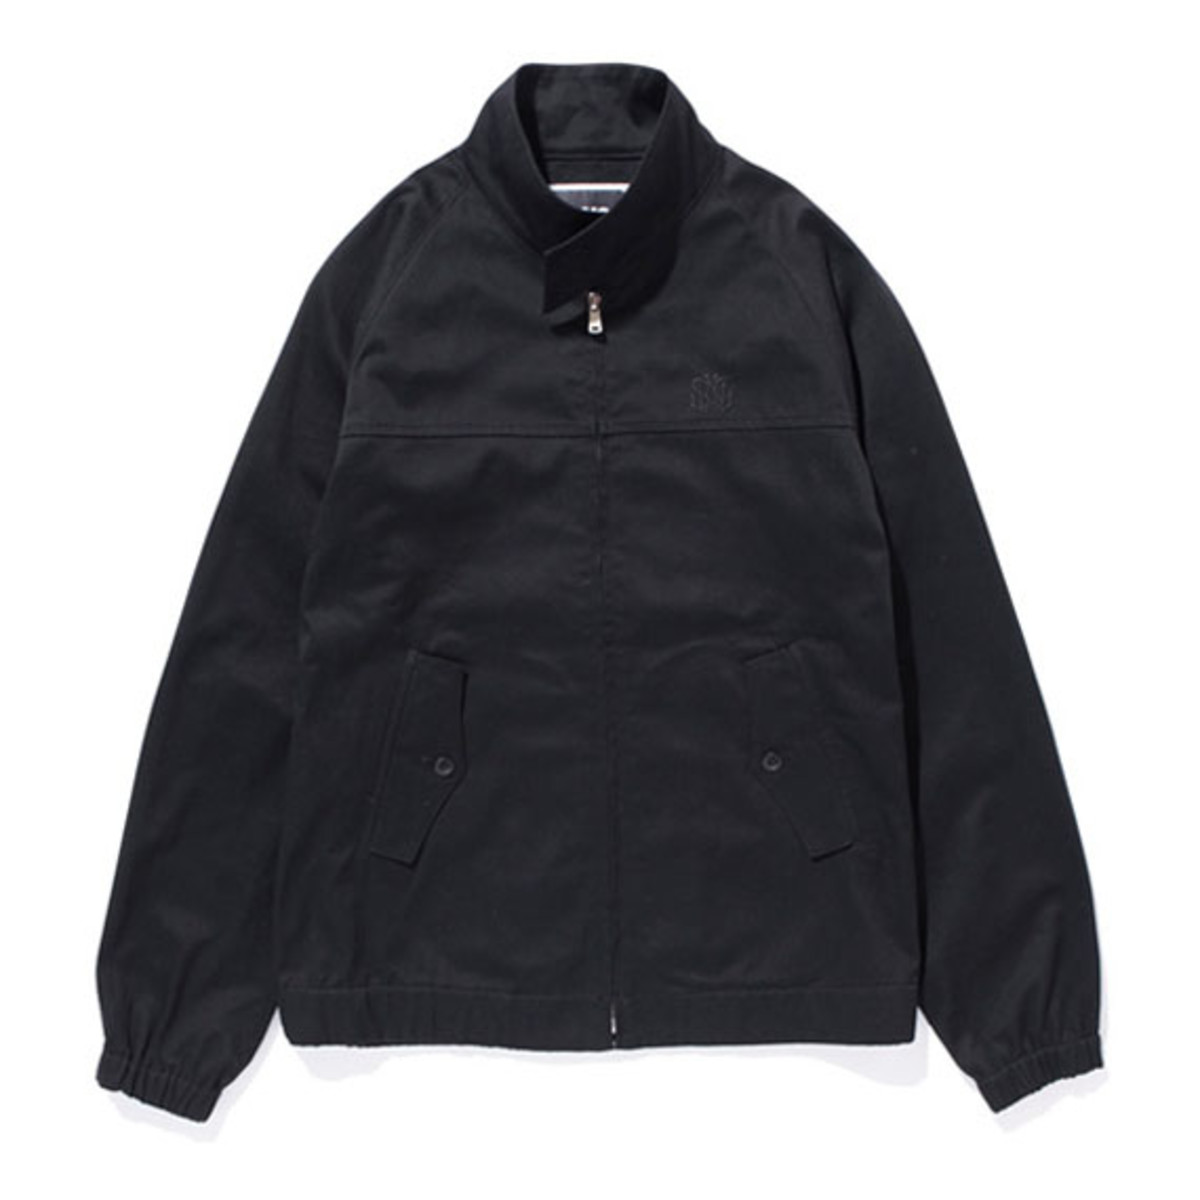 Cotton Swing Top Jacket Black